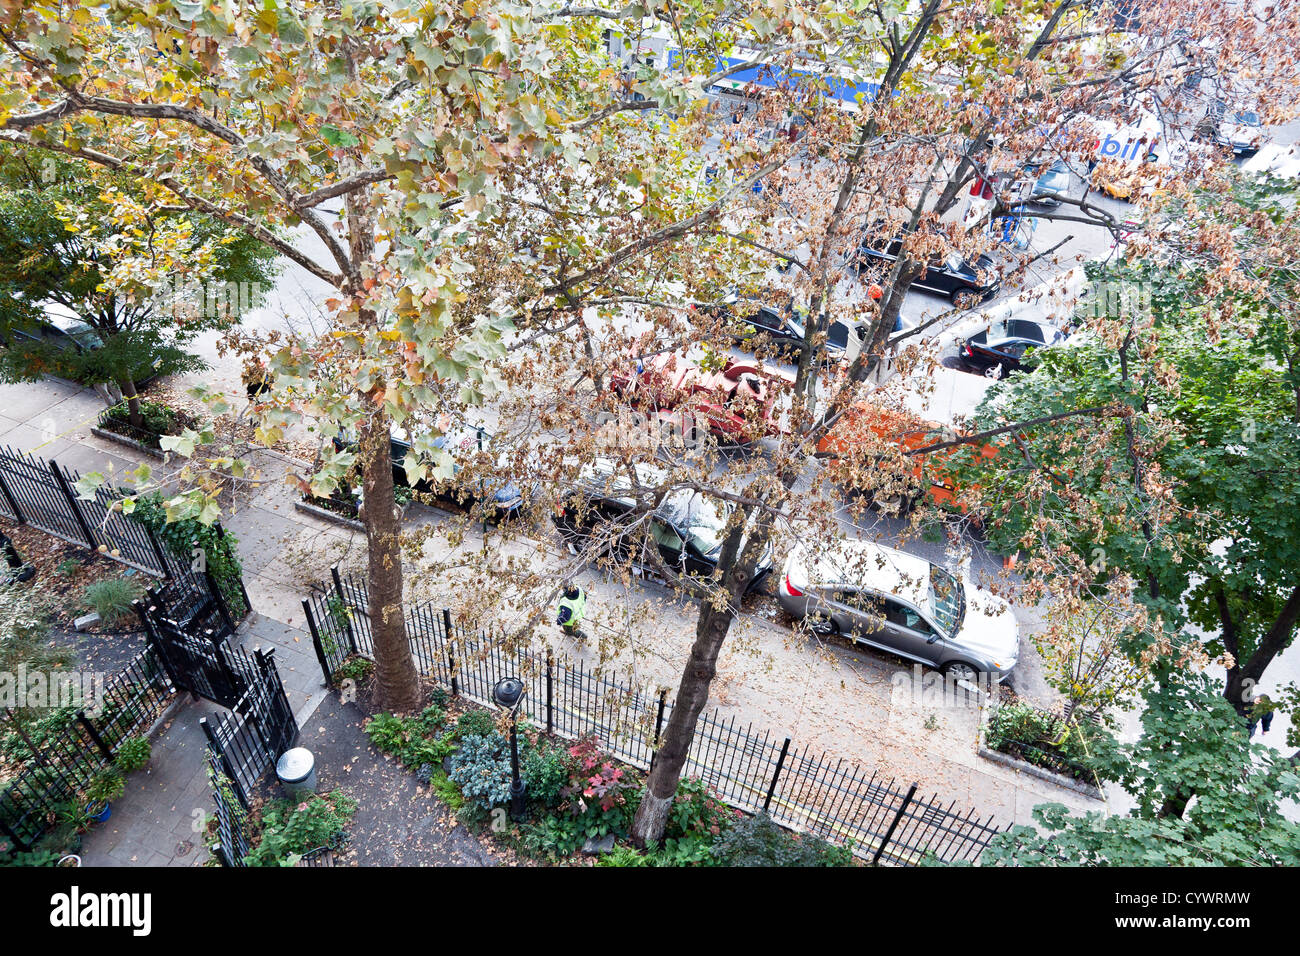 tree surgeon in cherry picker begins dismantling tree uprooted by hurricane Sandy & impaled on garden fence - Stock Image